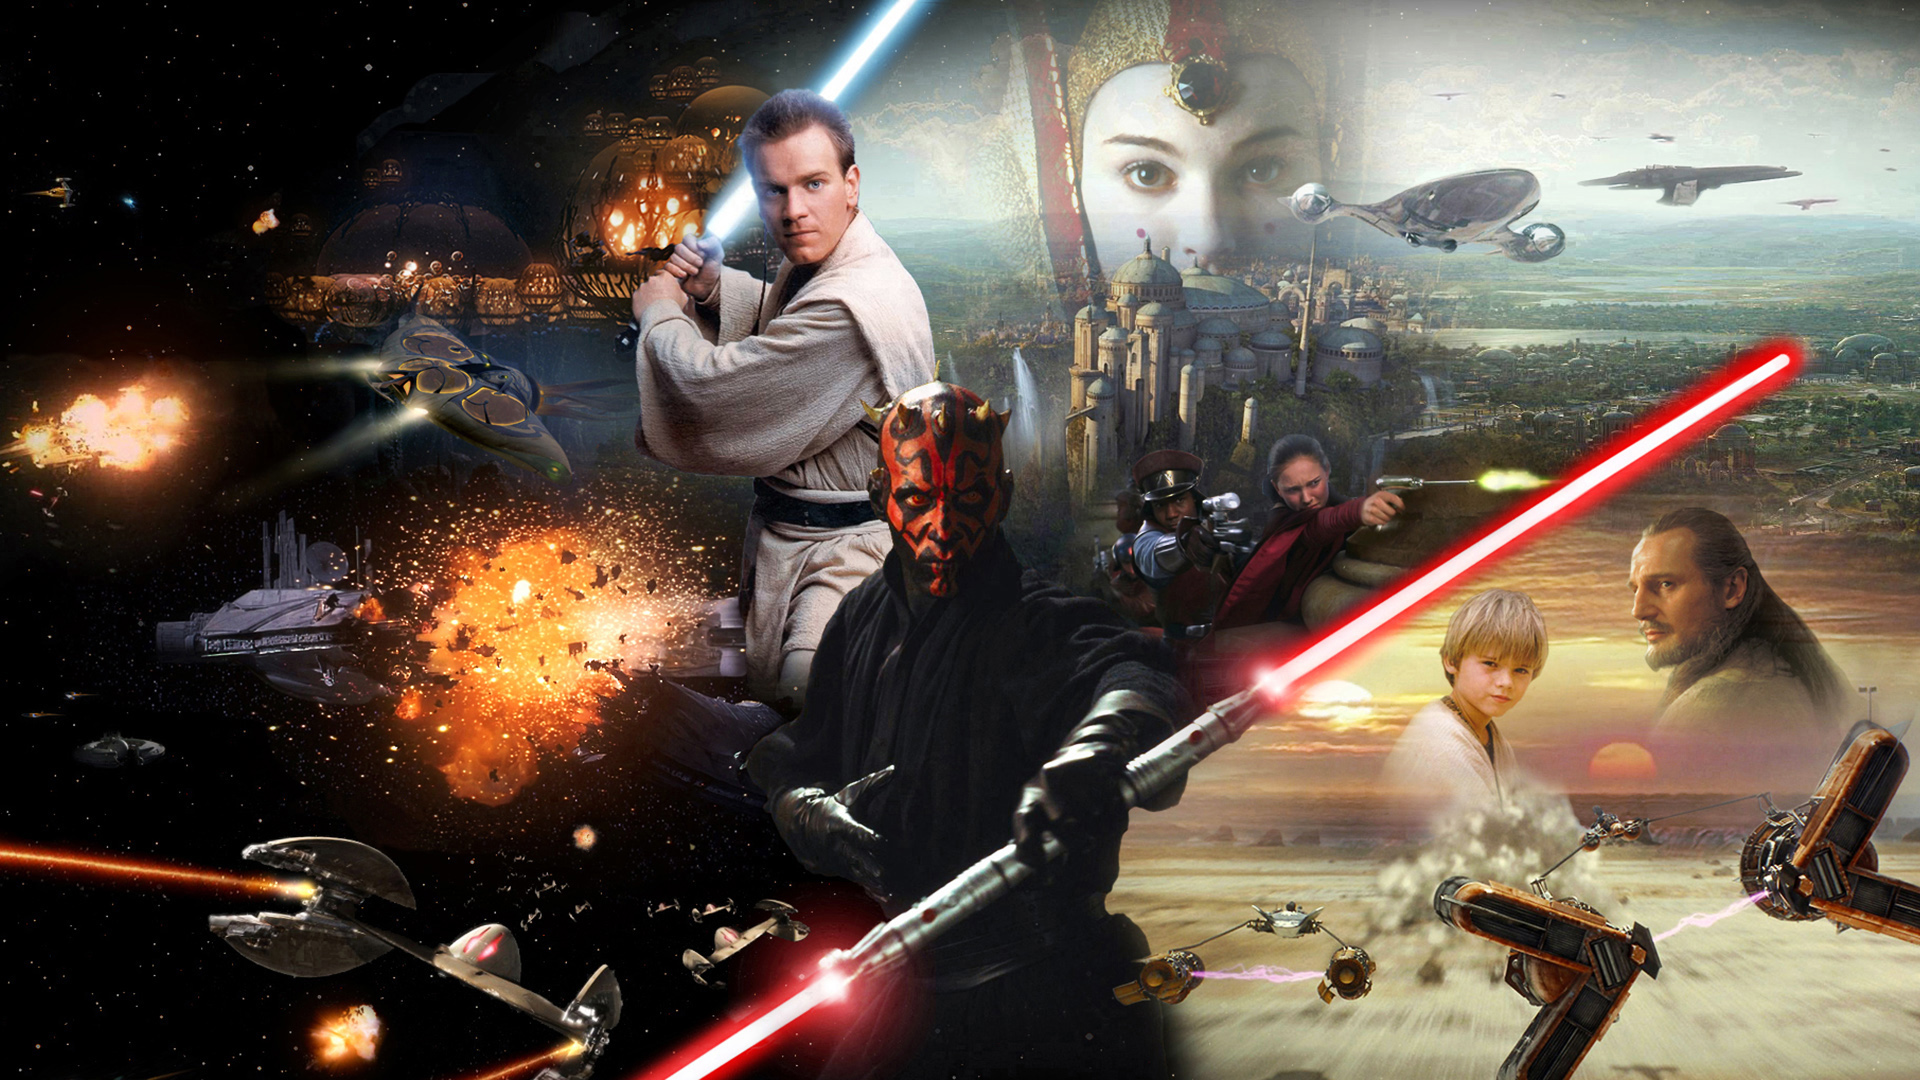 Star Wars The Phantom Menace 20th Anniversary Panel Announced With More Guests Incoming